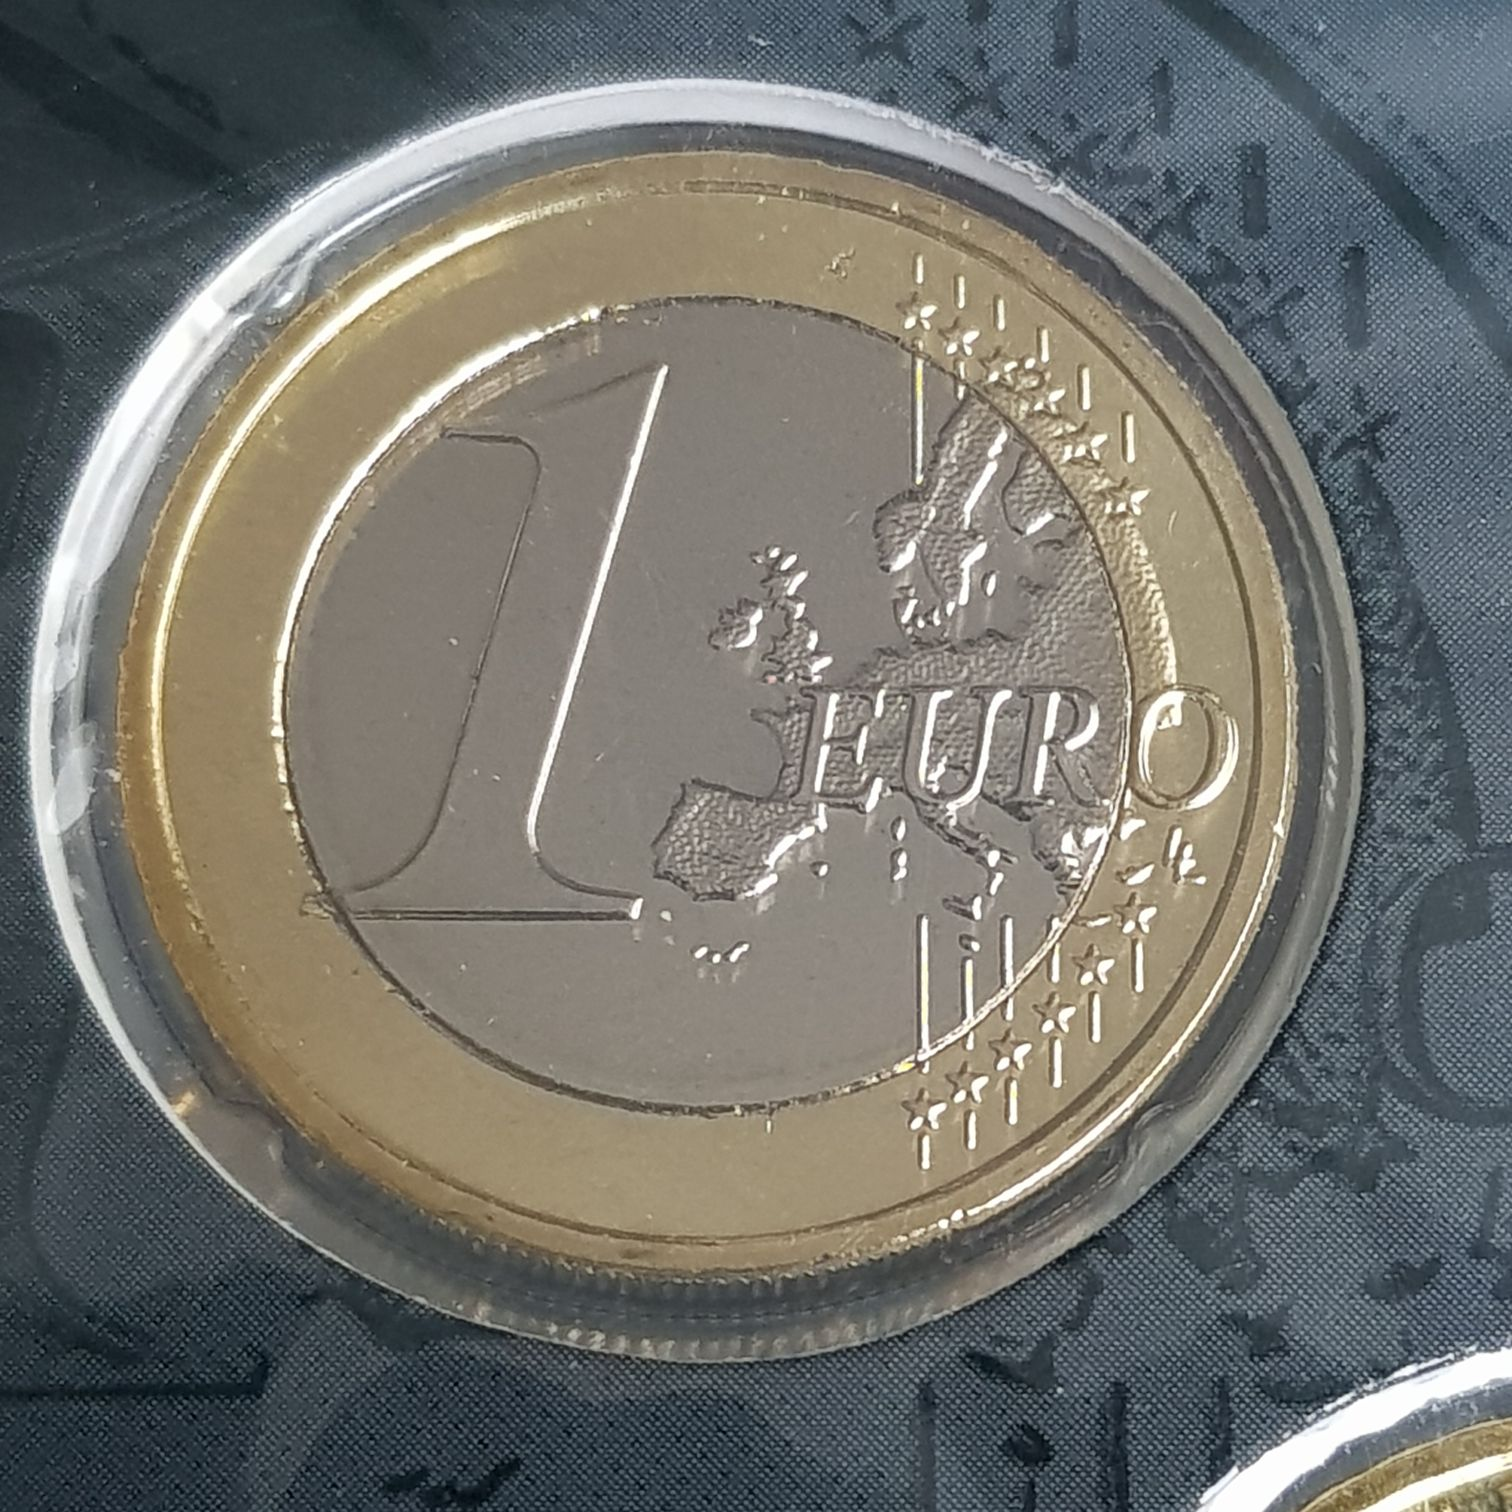 1 Euro Coin - $1 (2015) front image (front cover)